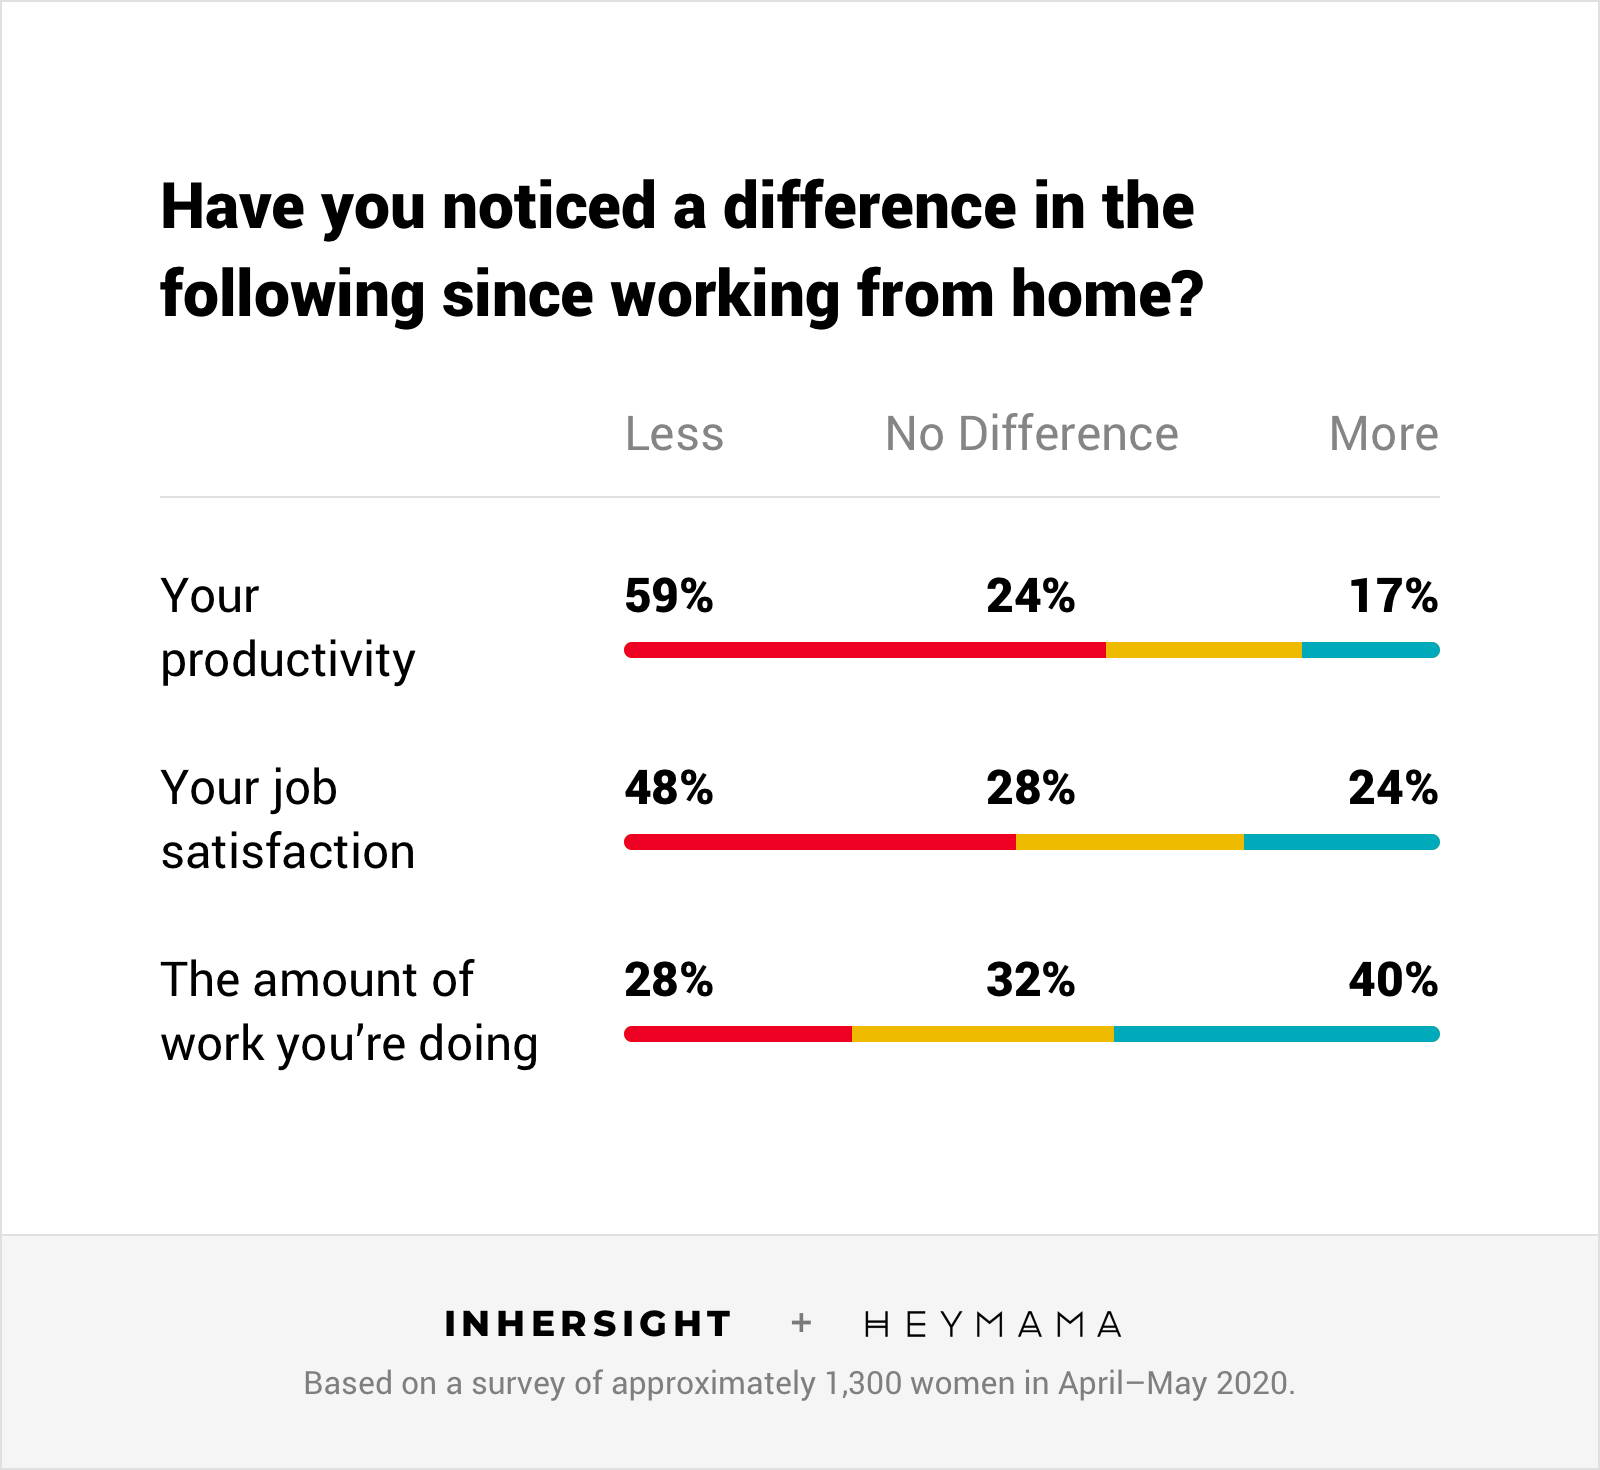 Data - Working mom productivity, job satisfaction, and work load during covid-19